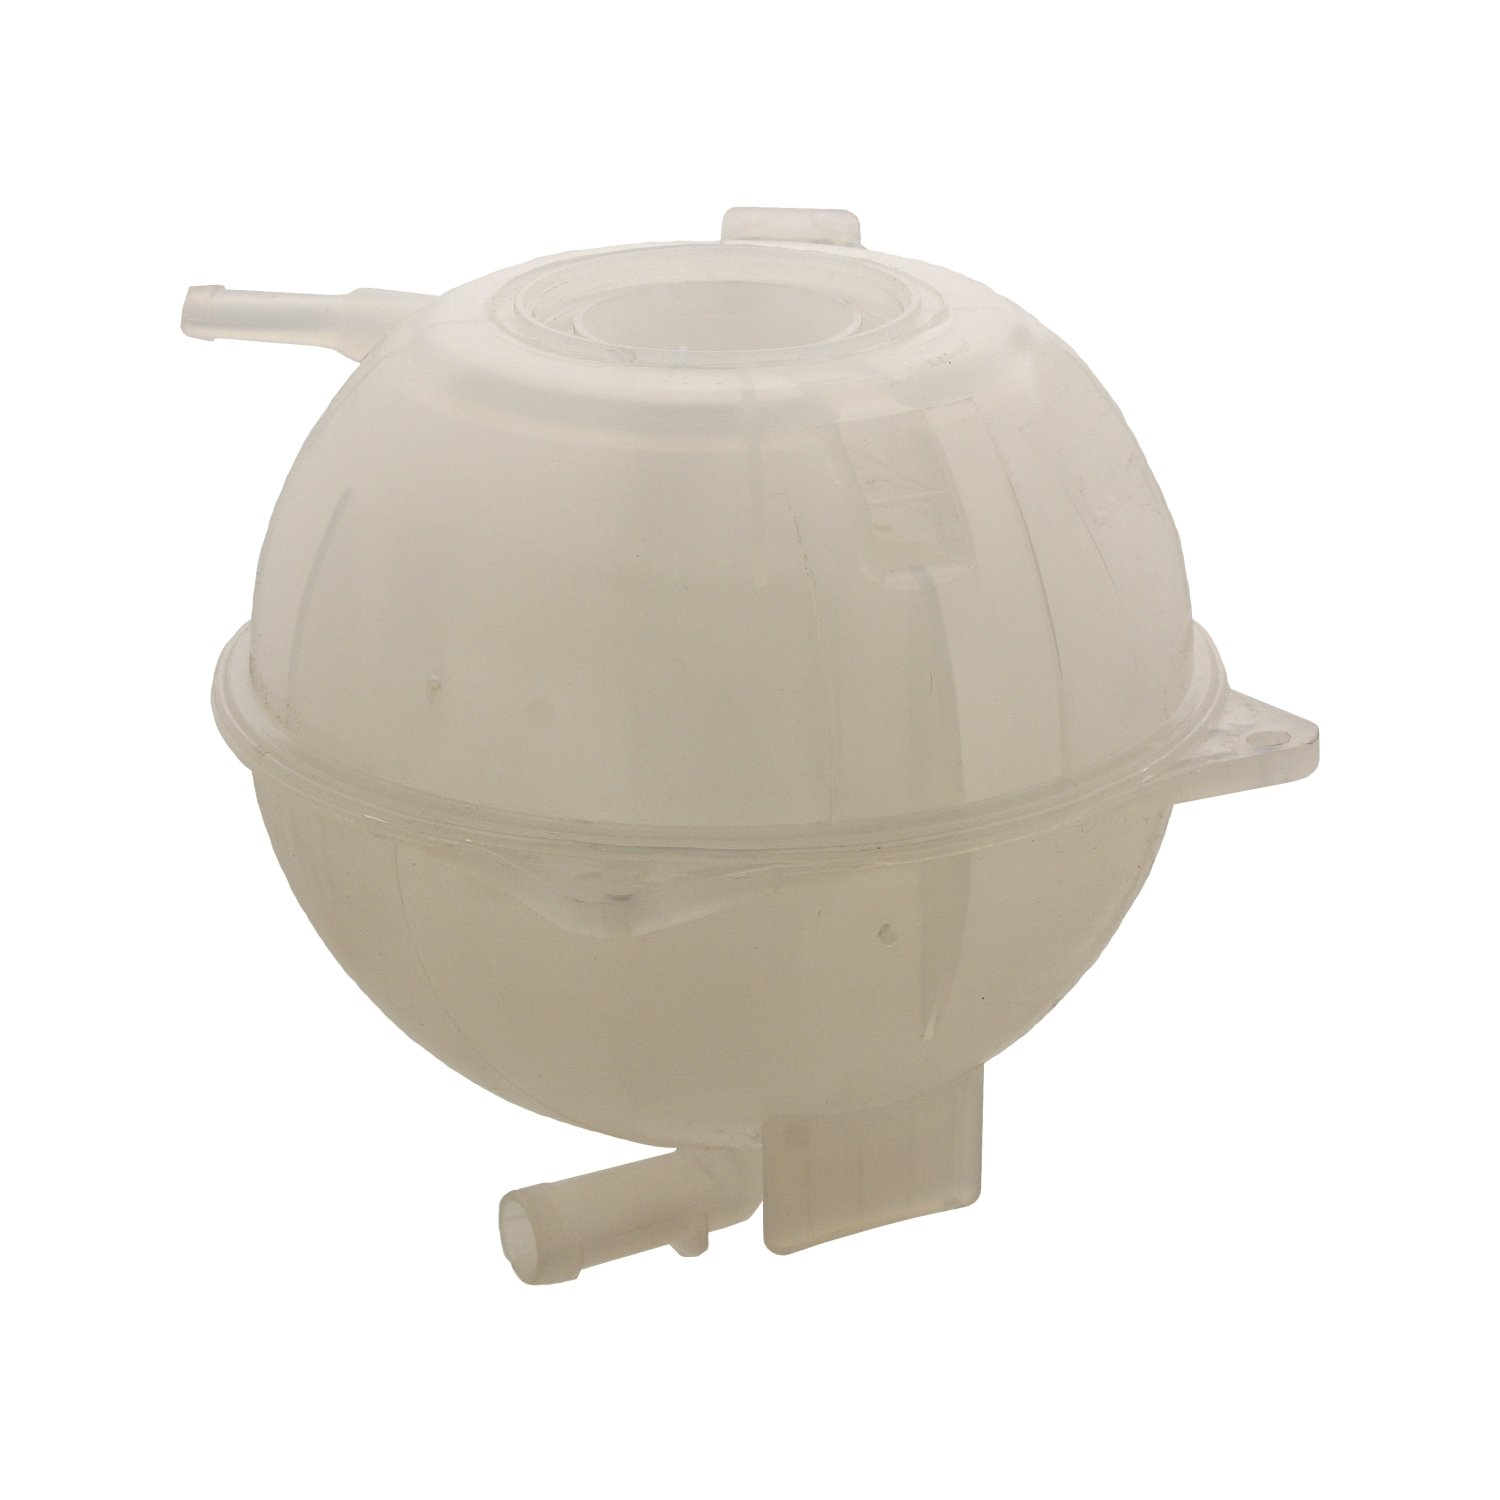 febi bilstein 02264 coolant expansion tank  - Pack of 1